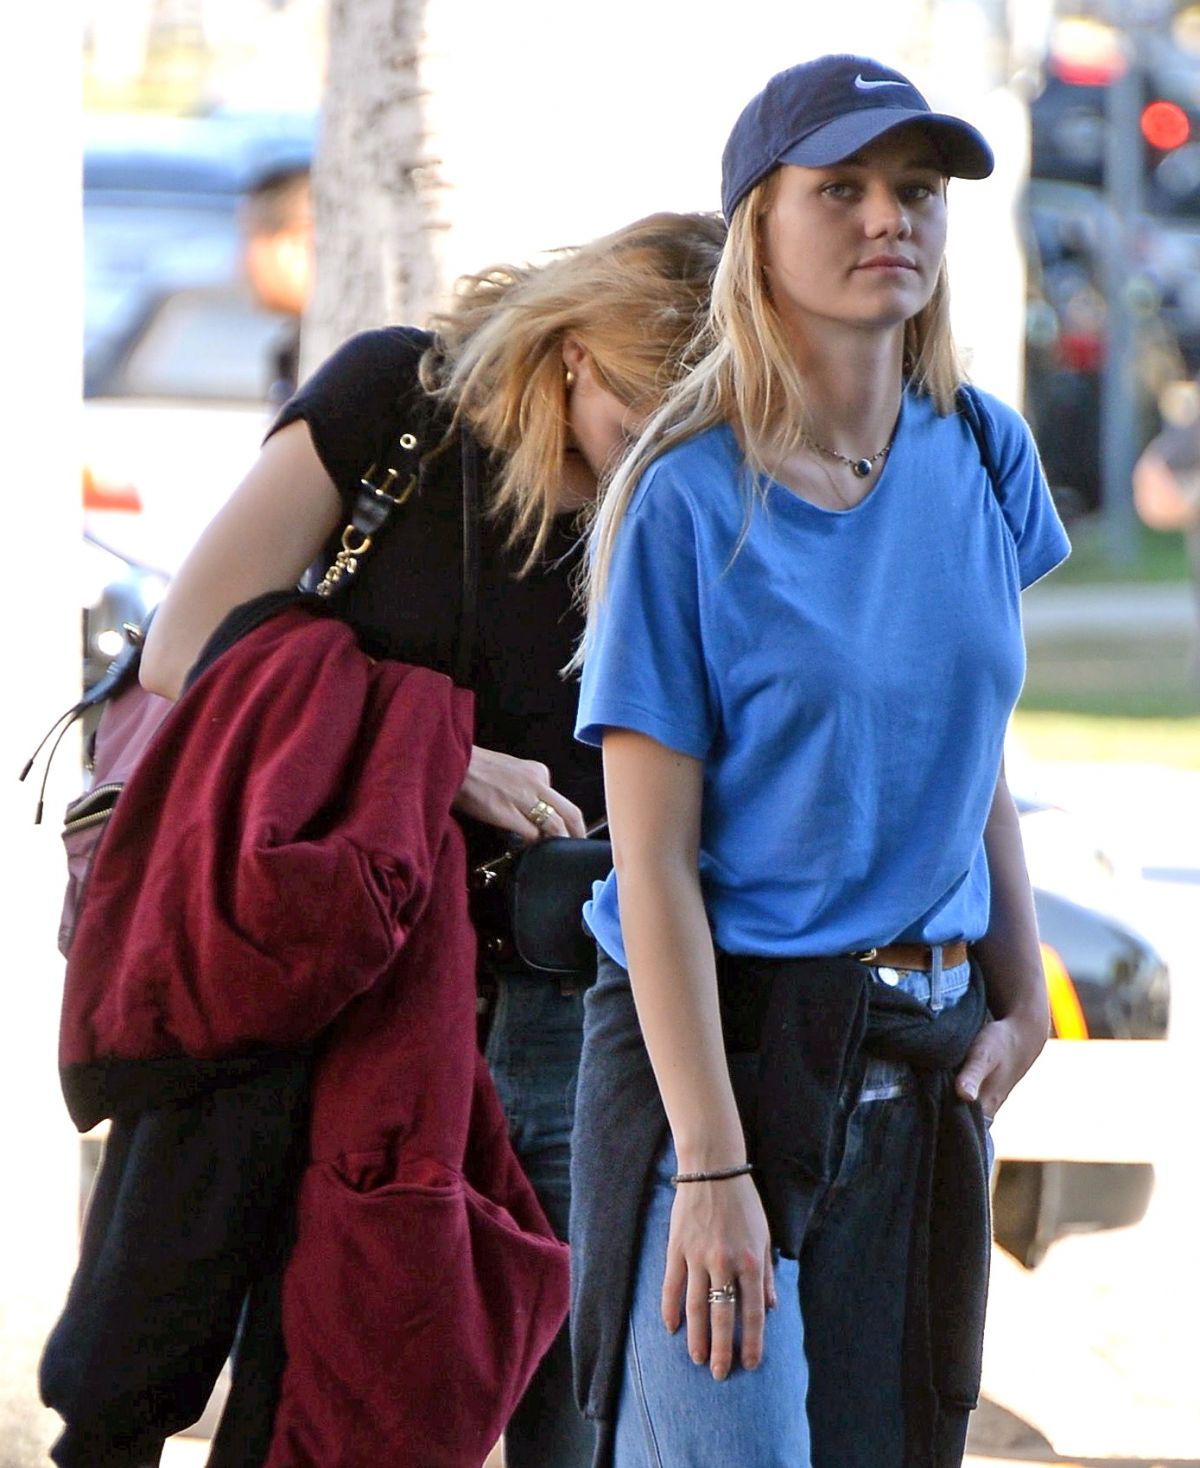 SUKI and IMMY WATERHOUSE with No Makeup Arrives at a Salon in West Hollywood 11/09/2016